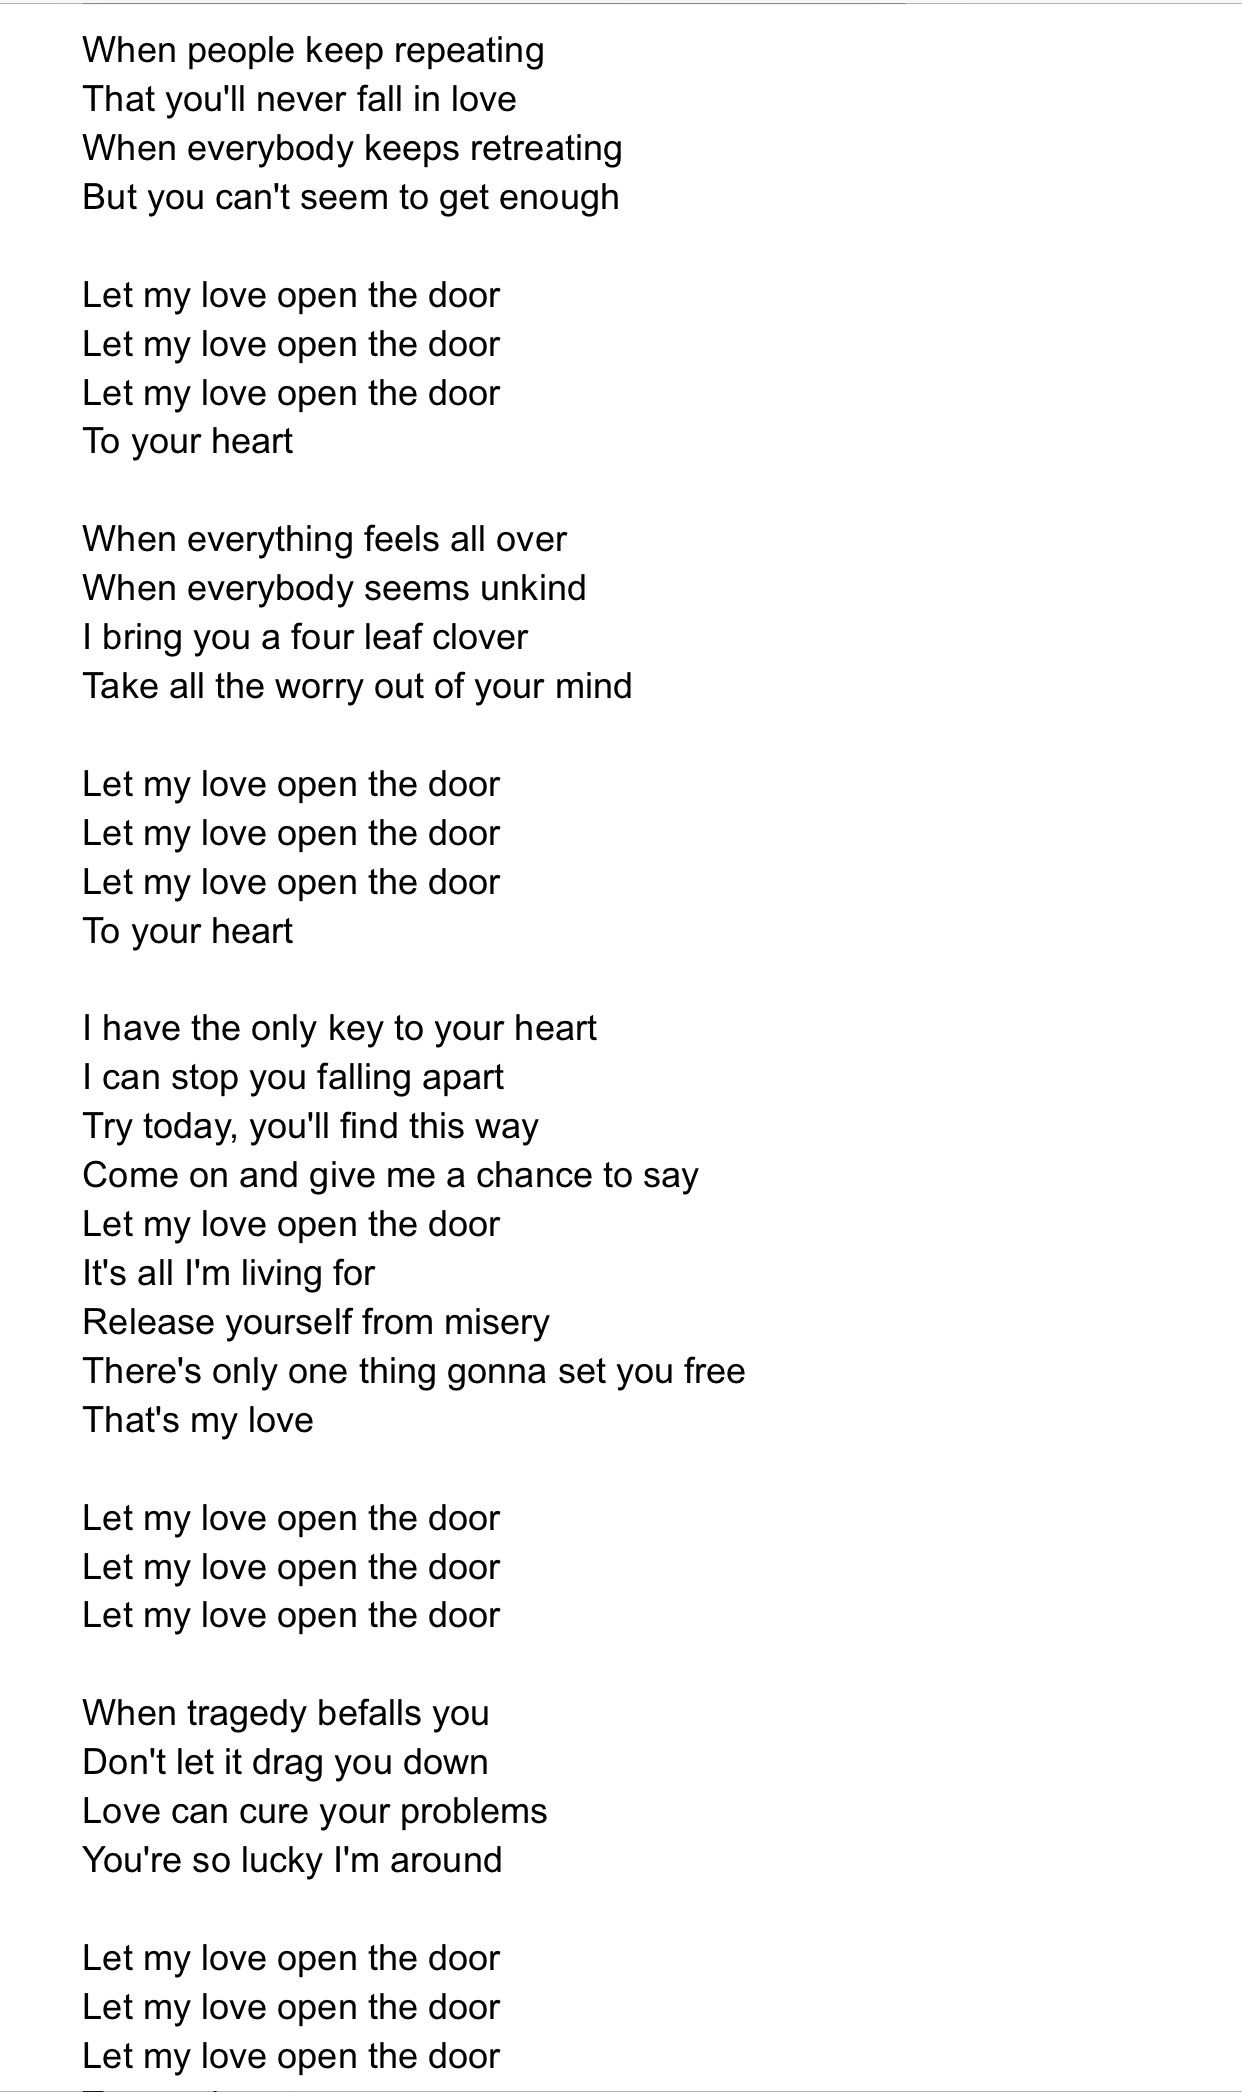 Pete Townshend Let My Love Open The Door lyrics  sc 1 st  Pinterest & Pete Townshend Let My Love Open The Door lyrics | Lyrics videos and ...